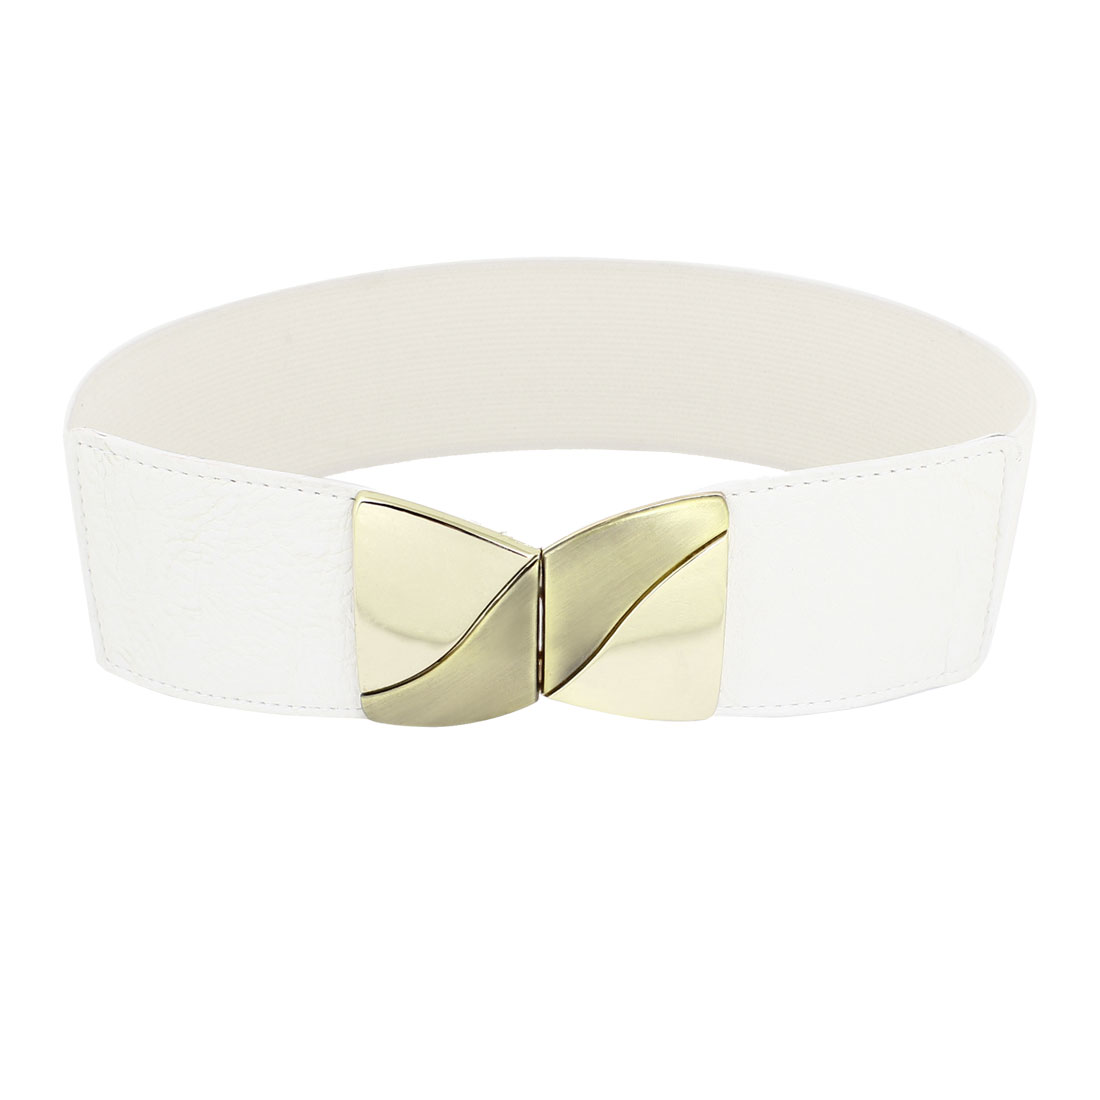 Interlocking Buckle Metal Bowknot Decor Waist Belt White for Lady